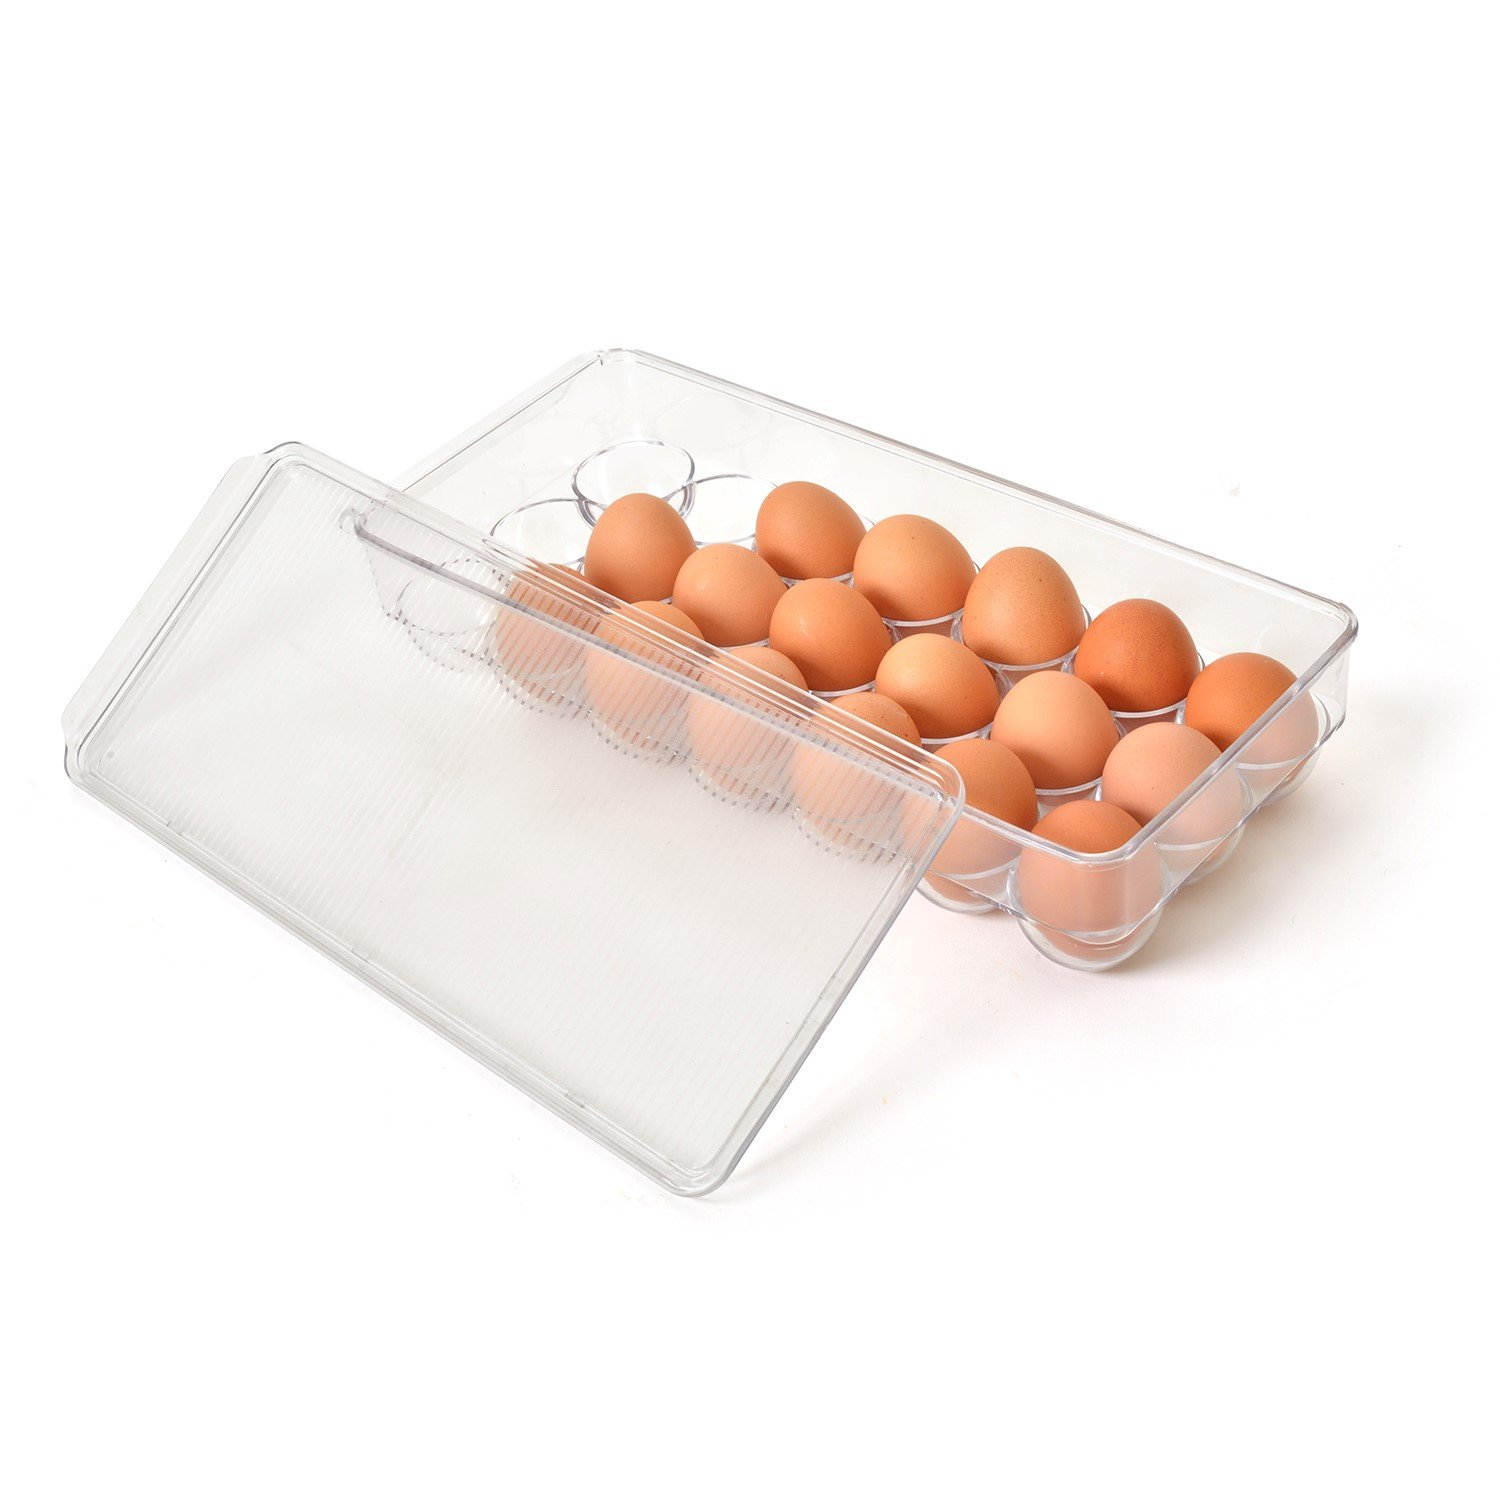 Totally Kitchen Covered Egg Tray Holder - Refrigerator Storage Container, 21 Egg Tray, Clear